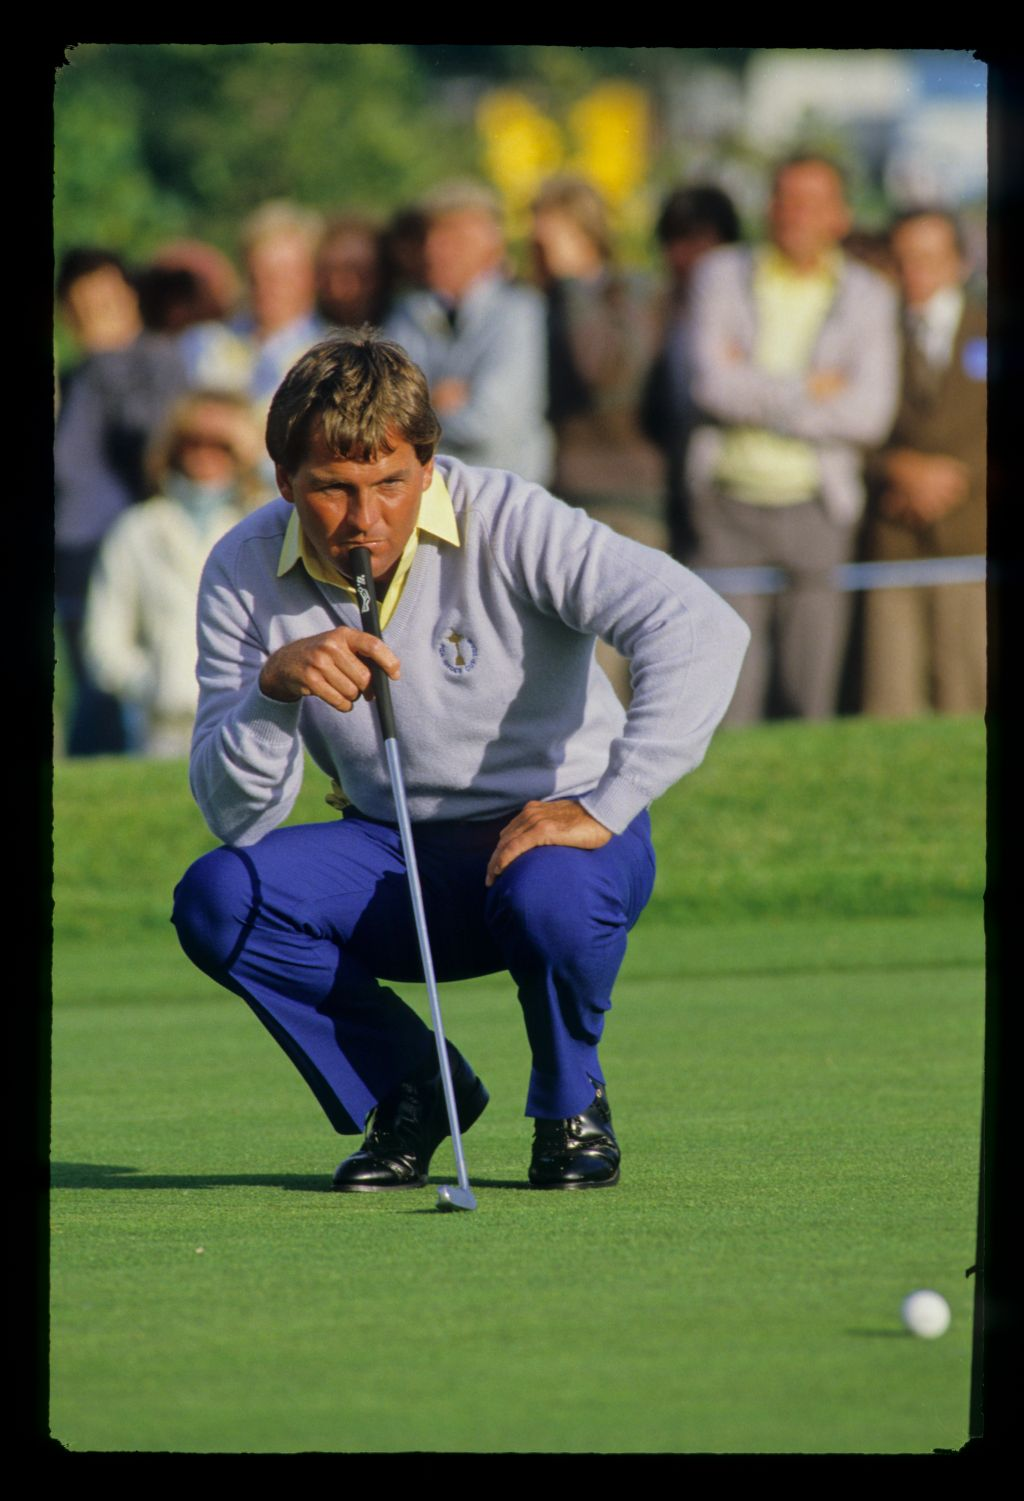 American Lanny Wadkins studies the line of his putt at the 1985 Ryder Cup